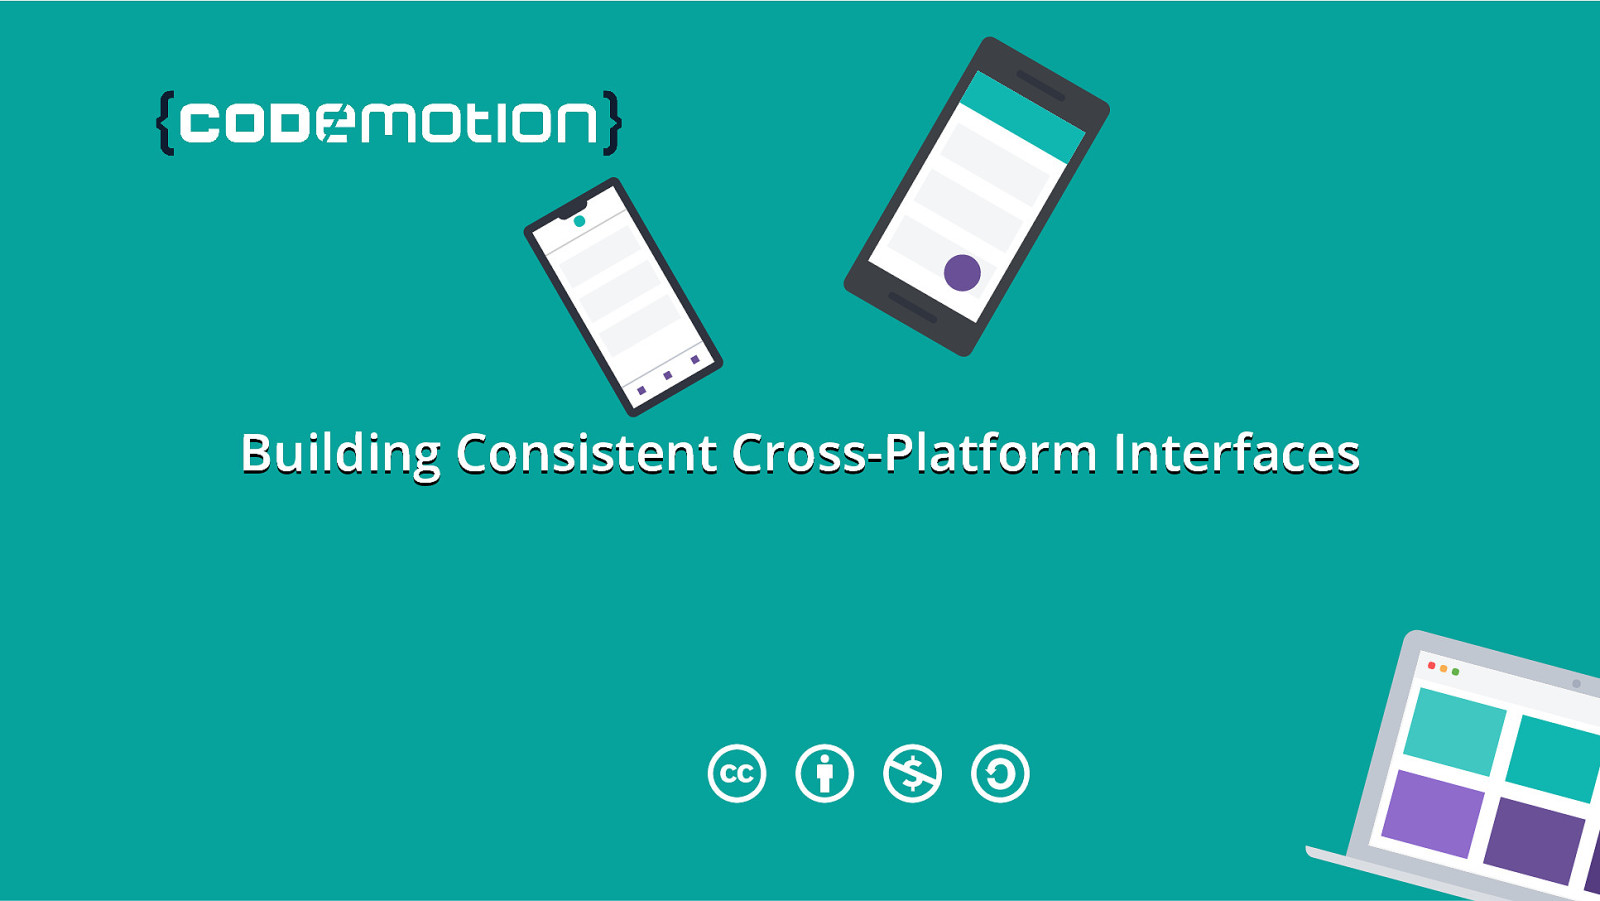 Building Consistent Cross-Platform Interfaces